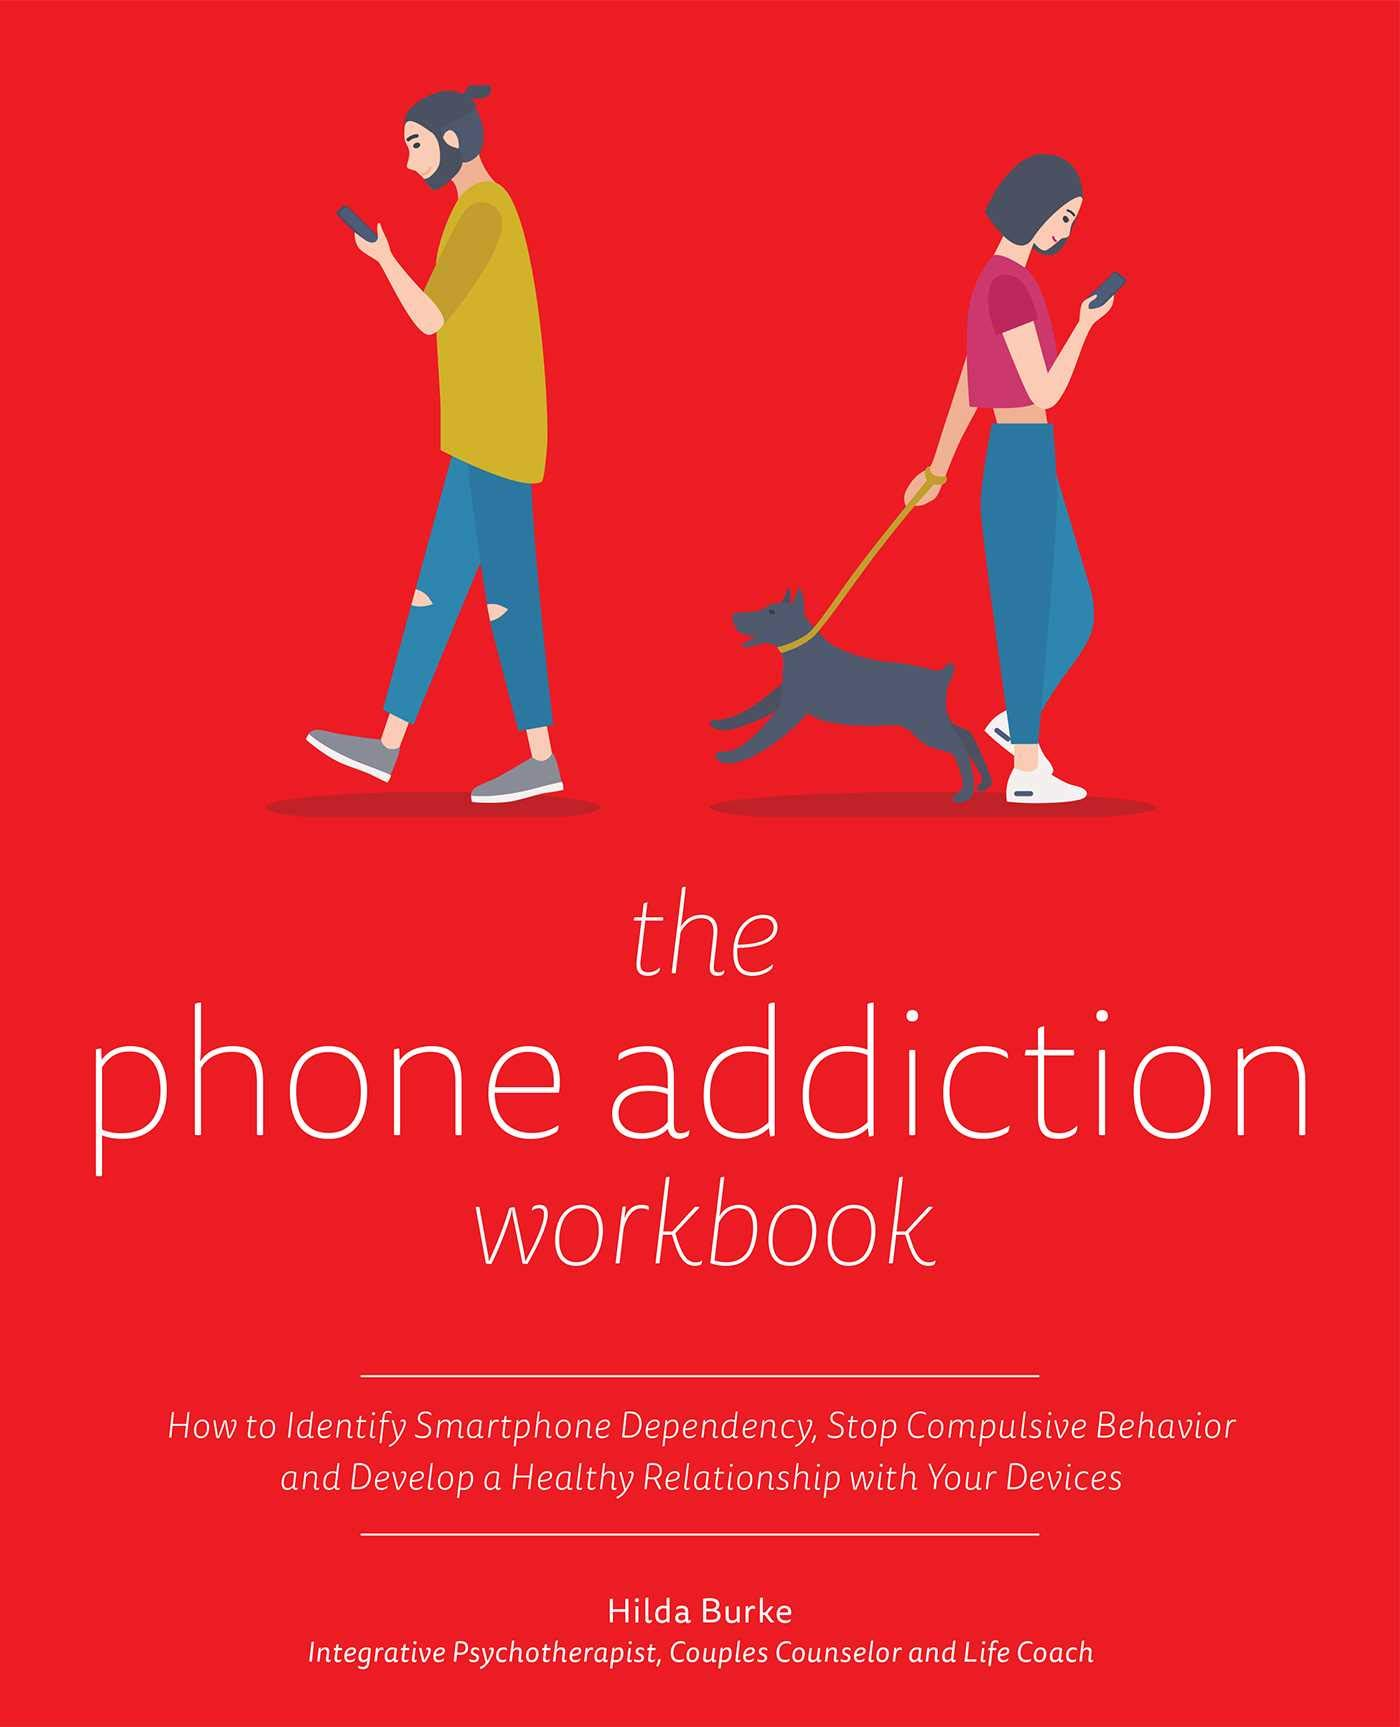 Download The Phone Addiction Workbook: How To Identify Smartphone Dependency, Stop Compulsive Behavior And Develop A Healthy Relati... 